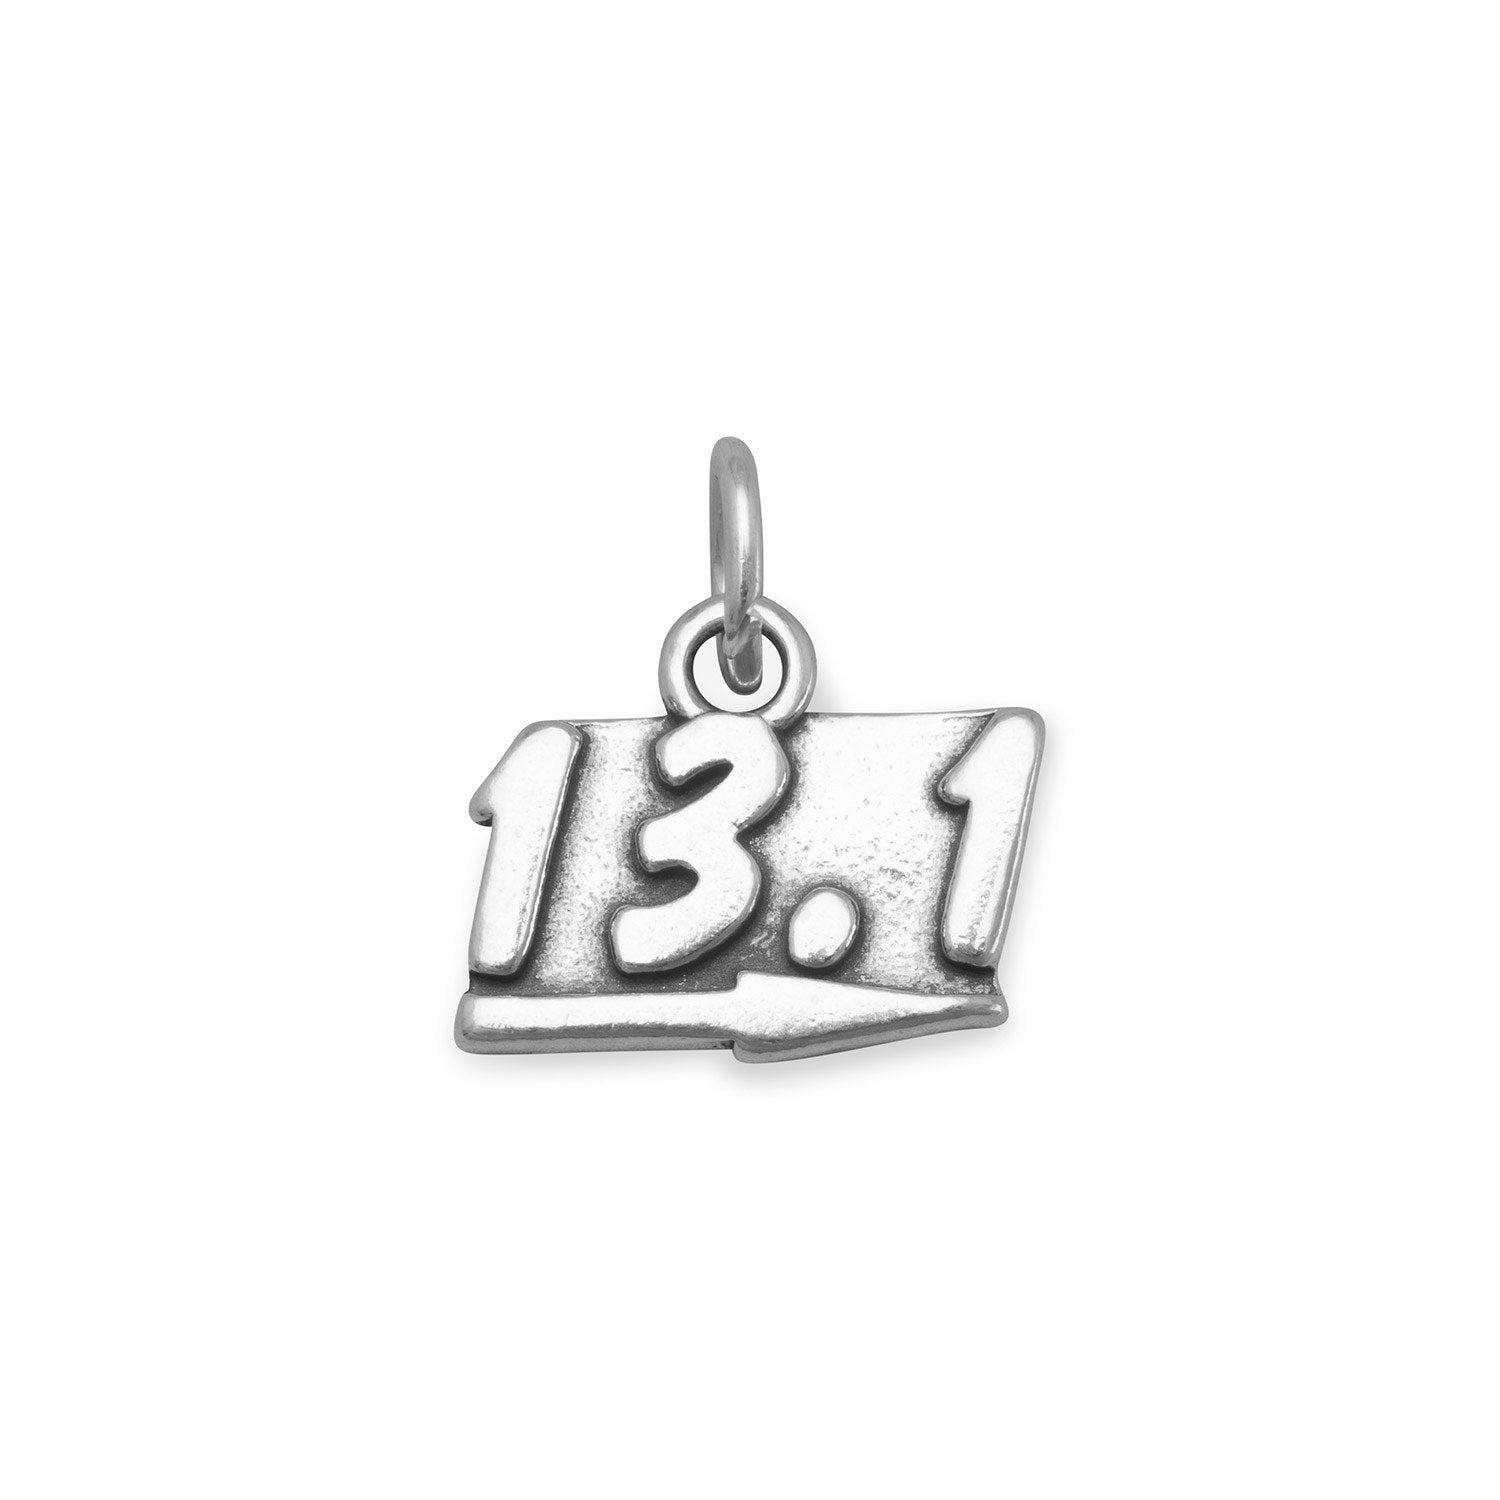 Sterling silver 13.1 Running charm